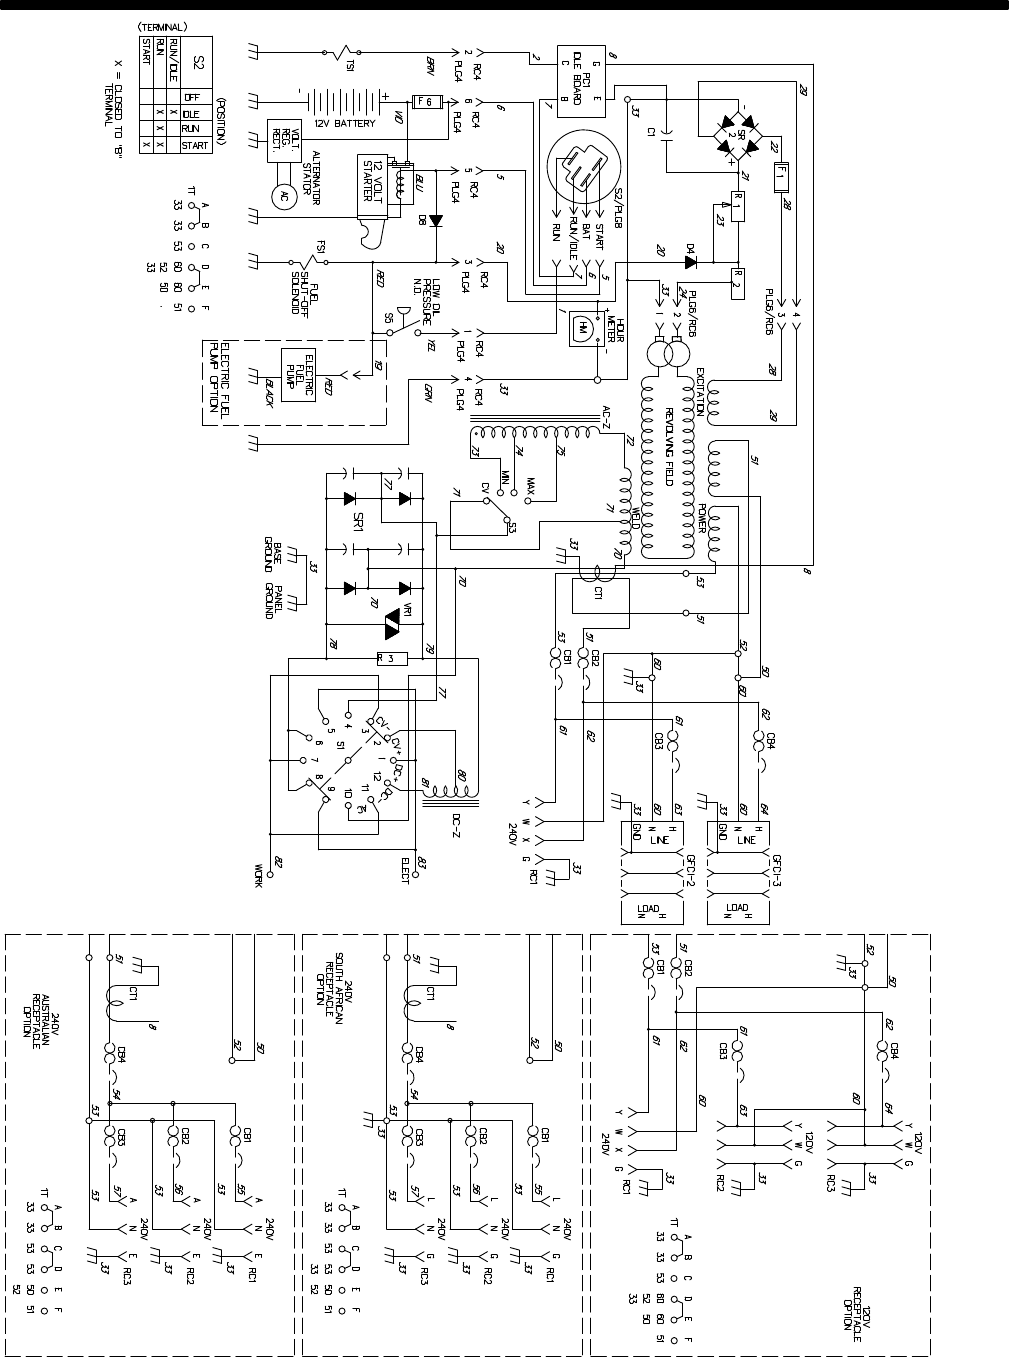 d3bdac77 e713 43b4 a88f 6532334b38fe bg16?resize\\\\\\\\\\\\\\\=665%2C894 miller 200 welder wiring diagram for a on miller download wirning miller roughneck 1e wiring diagram at soozxer.org